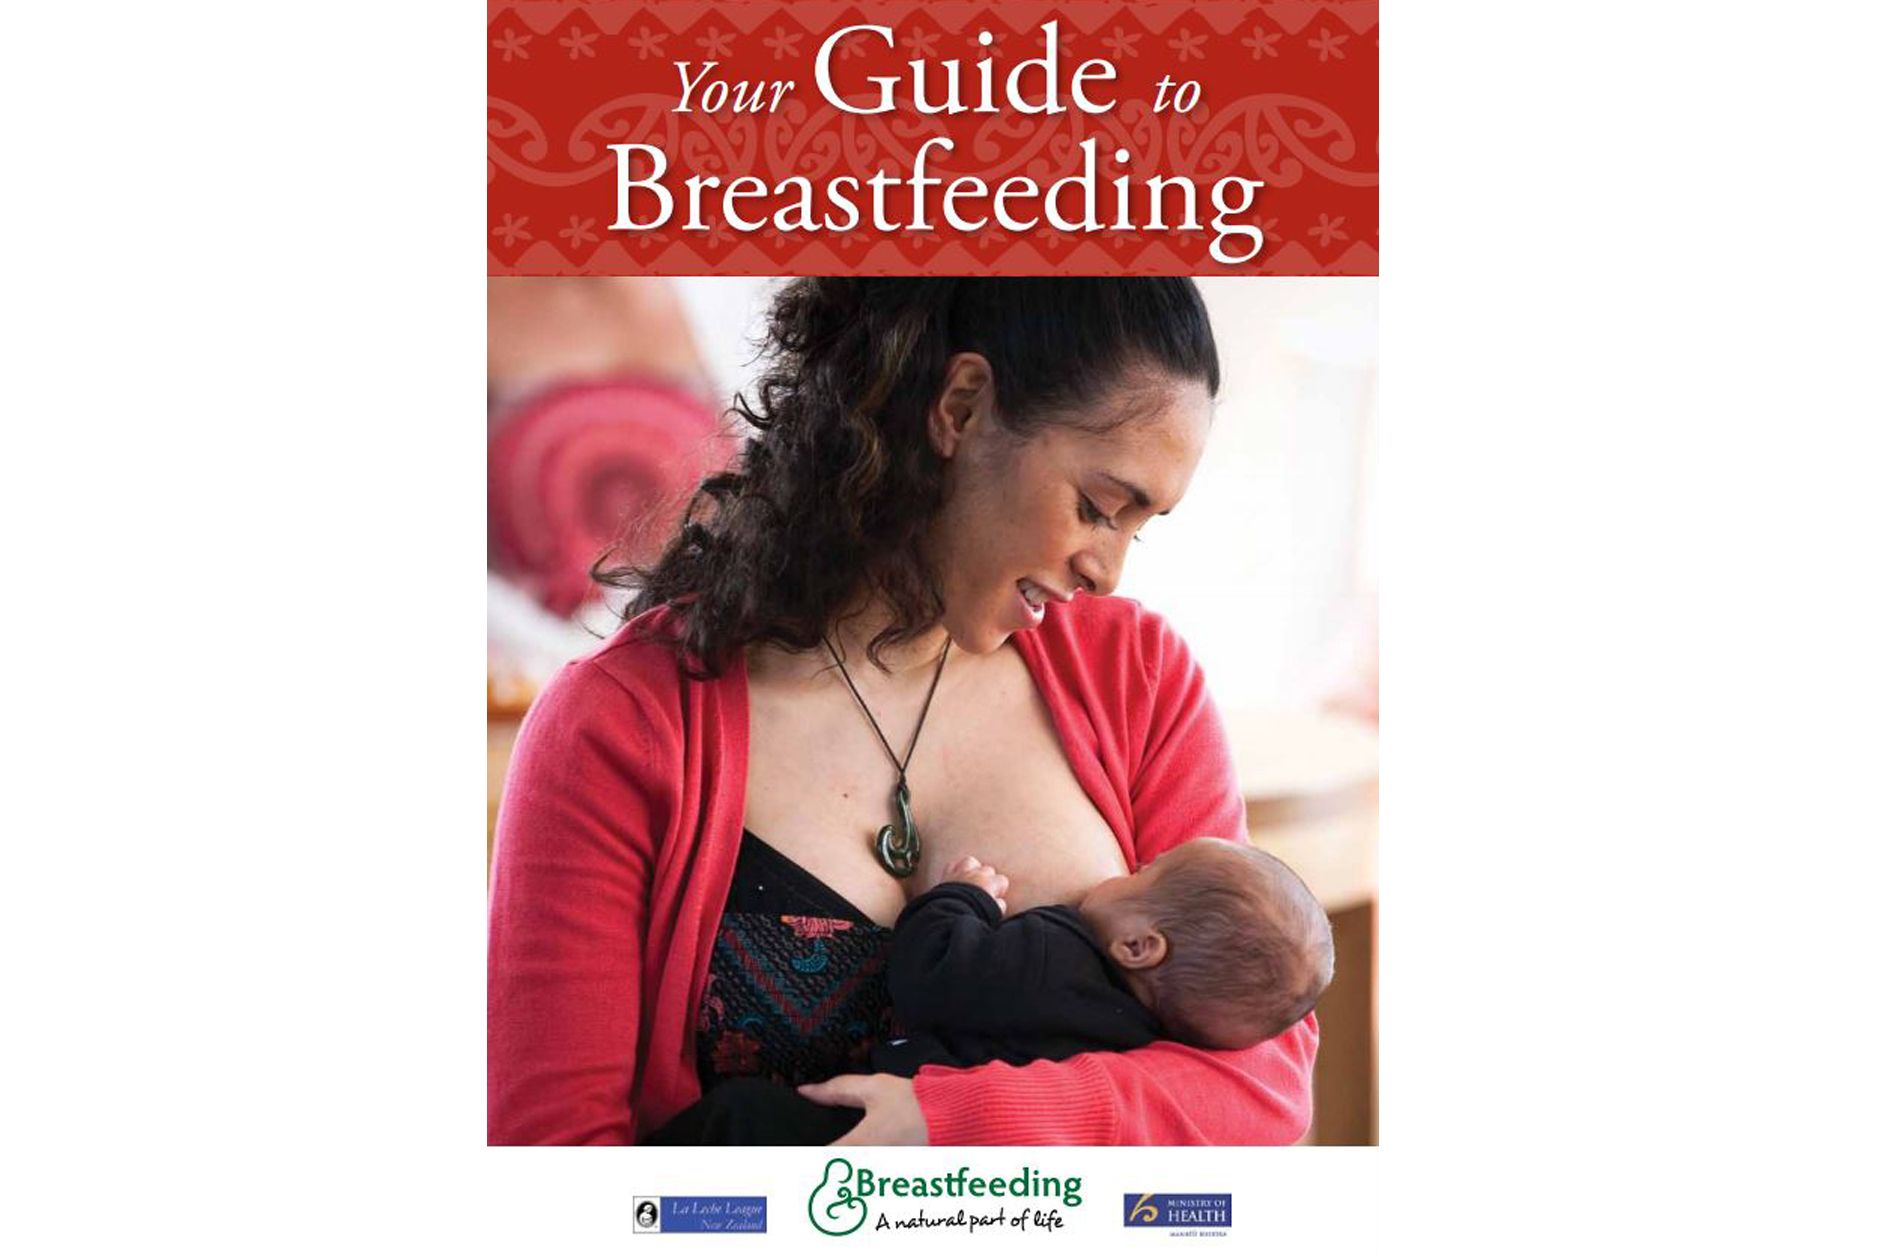 Breastfeeding & newborns – resources & languages